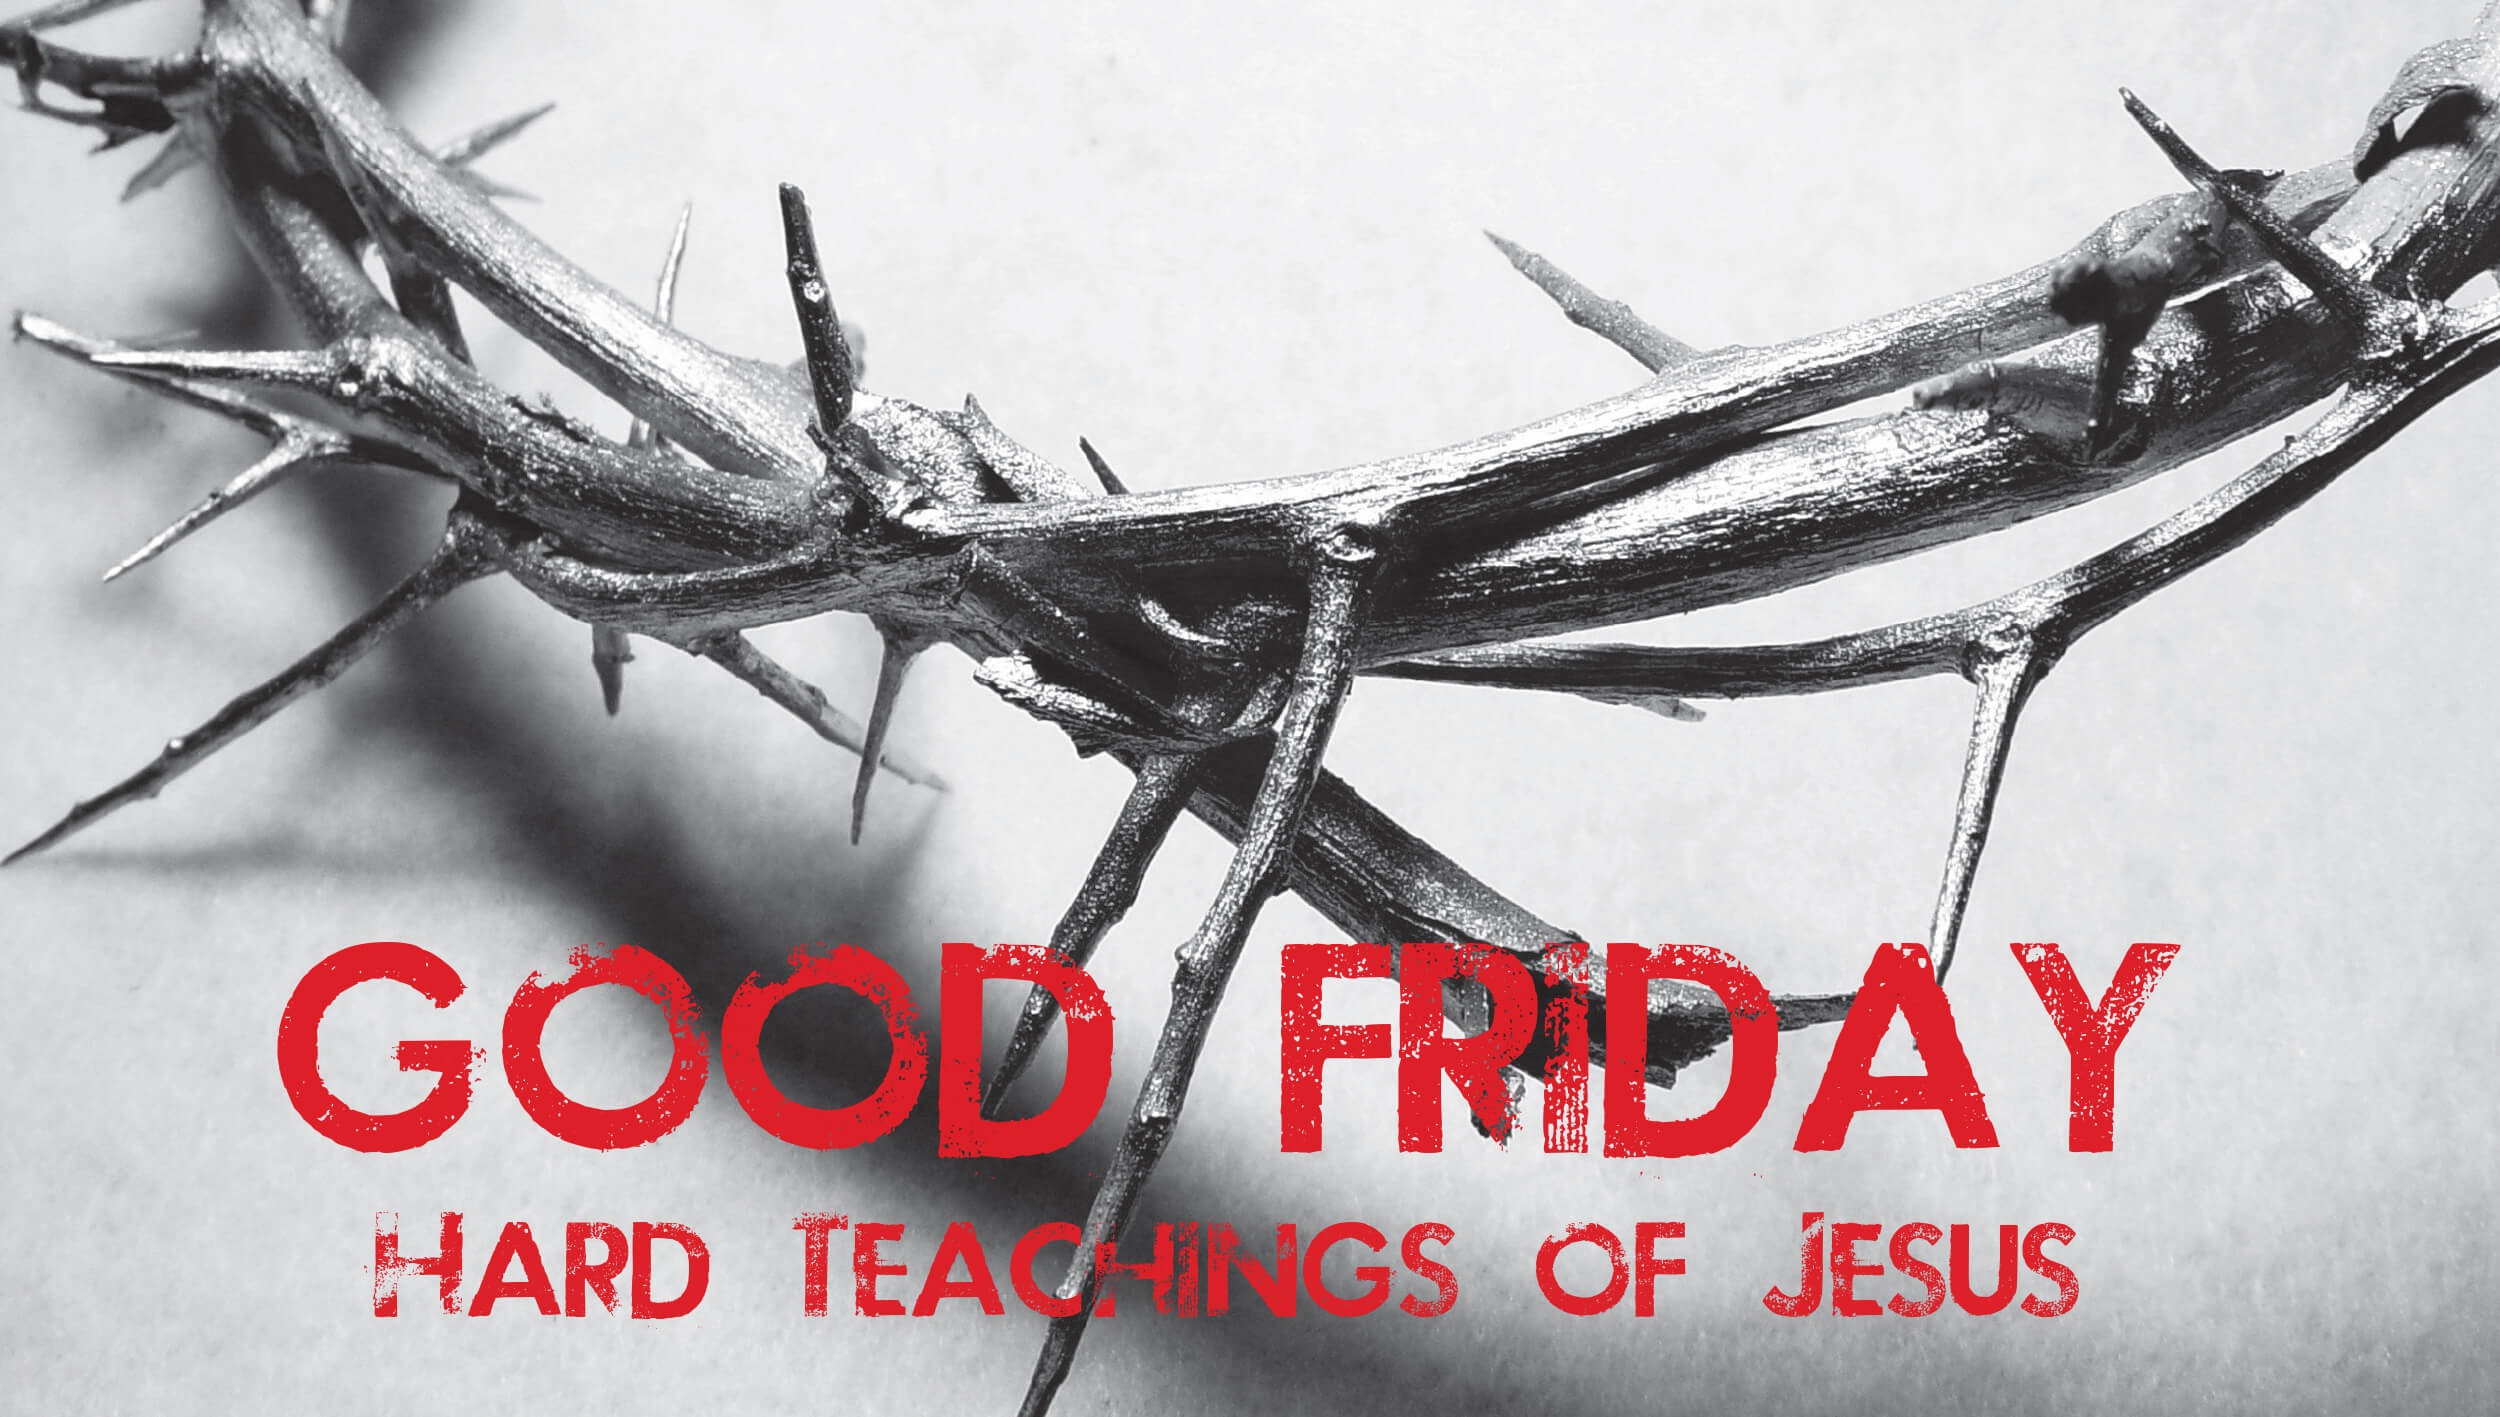 good friday thorn of jesus hd wallpaper